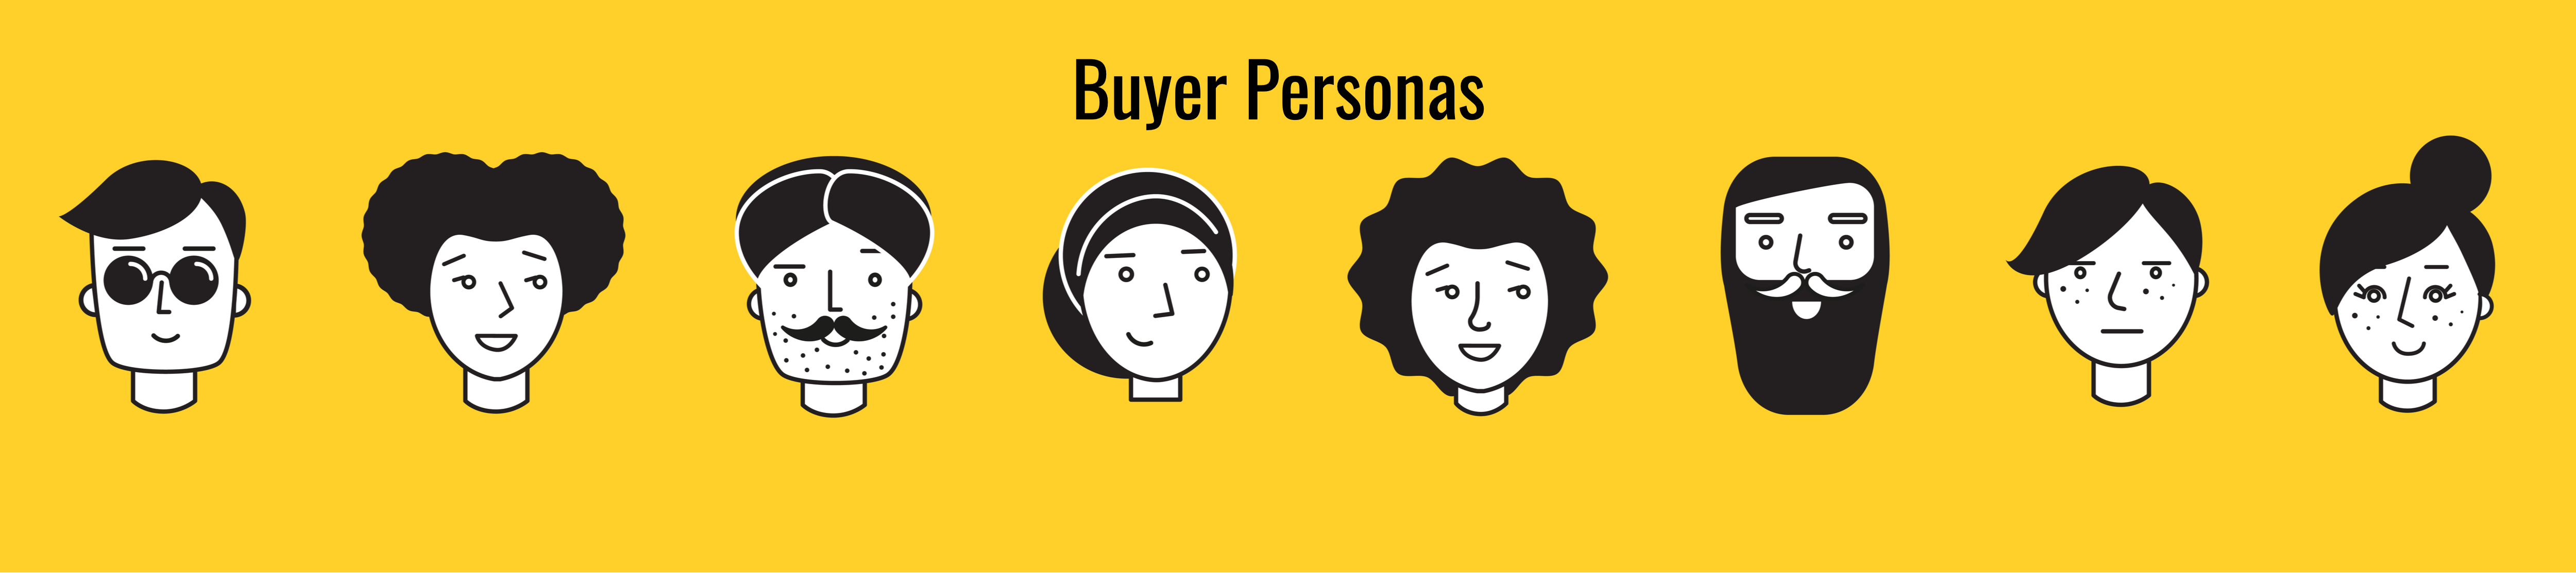 Buyer Personas-1